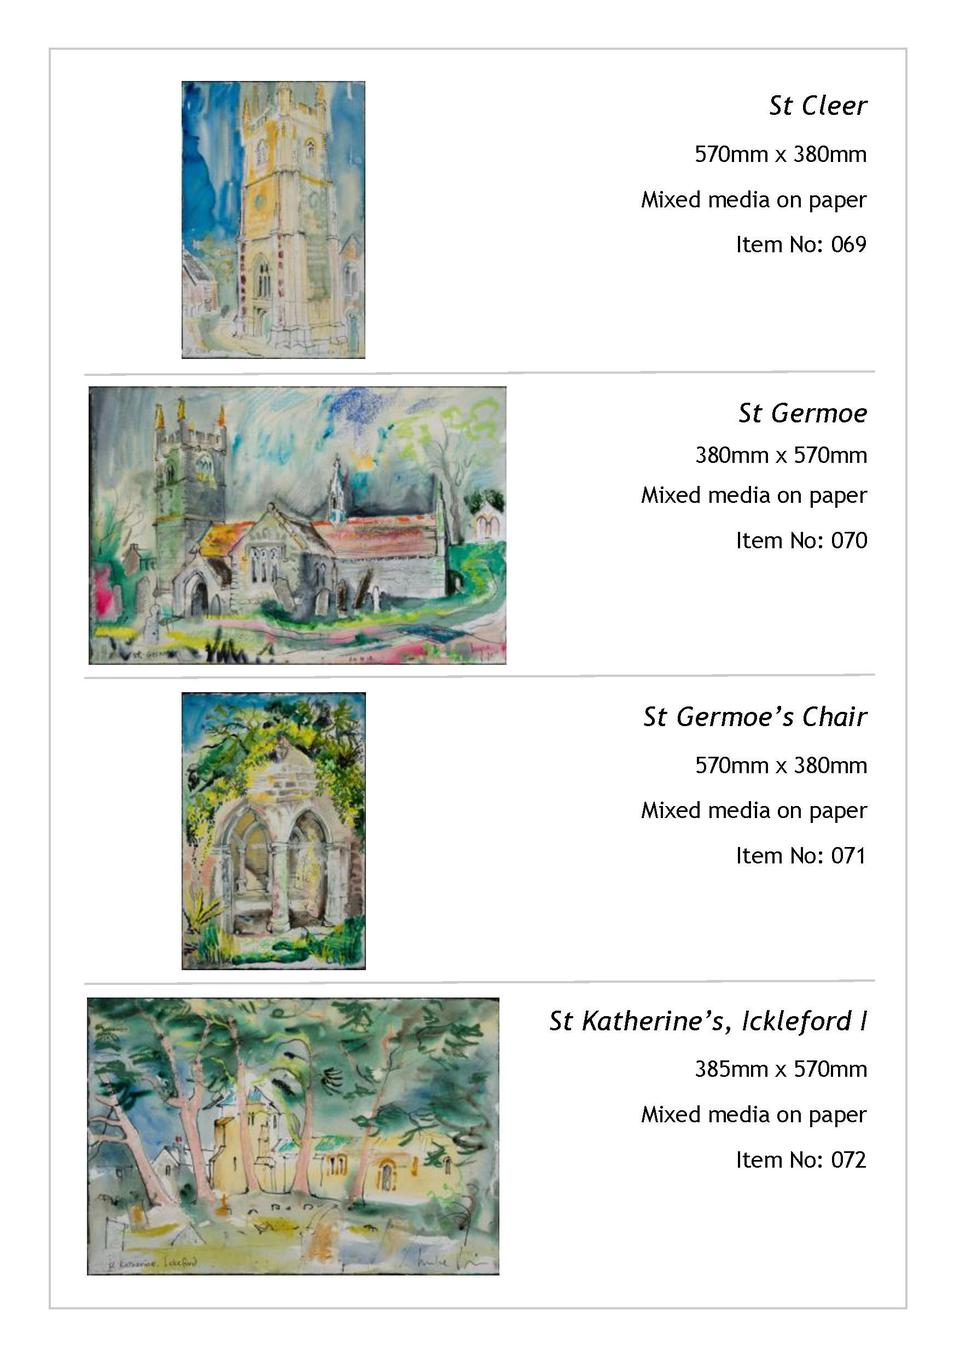 St Cleer 570mm x 380mm Mixed media on paper  Mary Tavy 380mm x 570mm Mixed media on paper  Item No  069  Item No  041  St ...